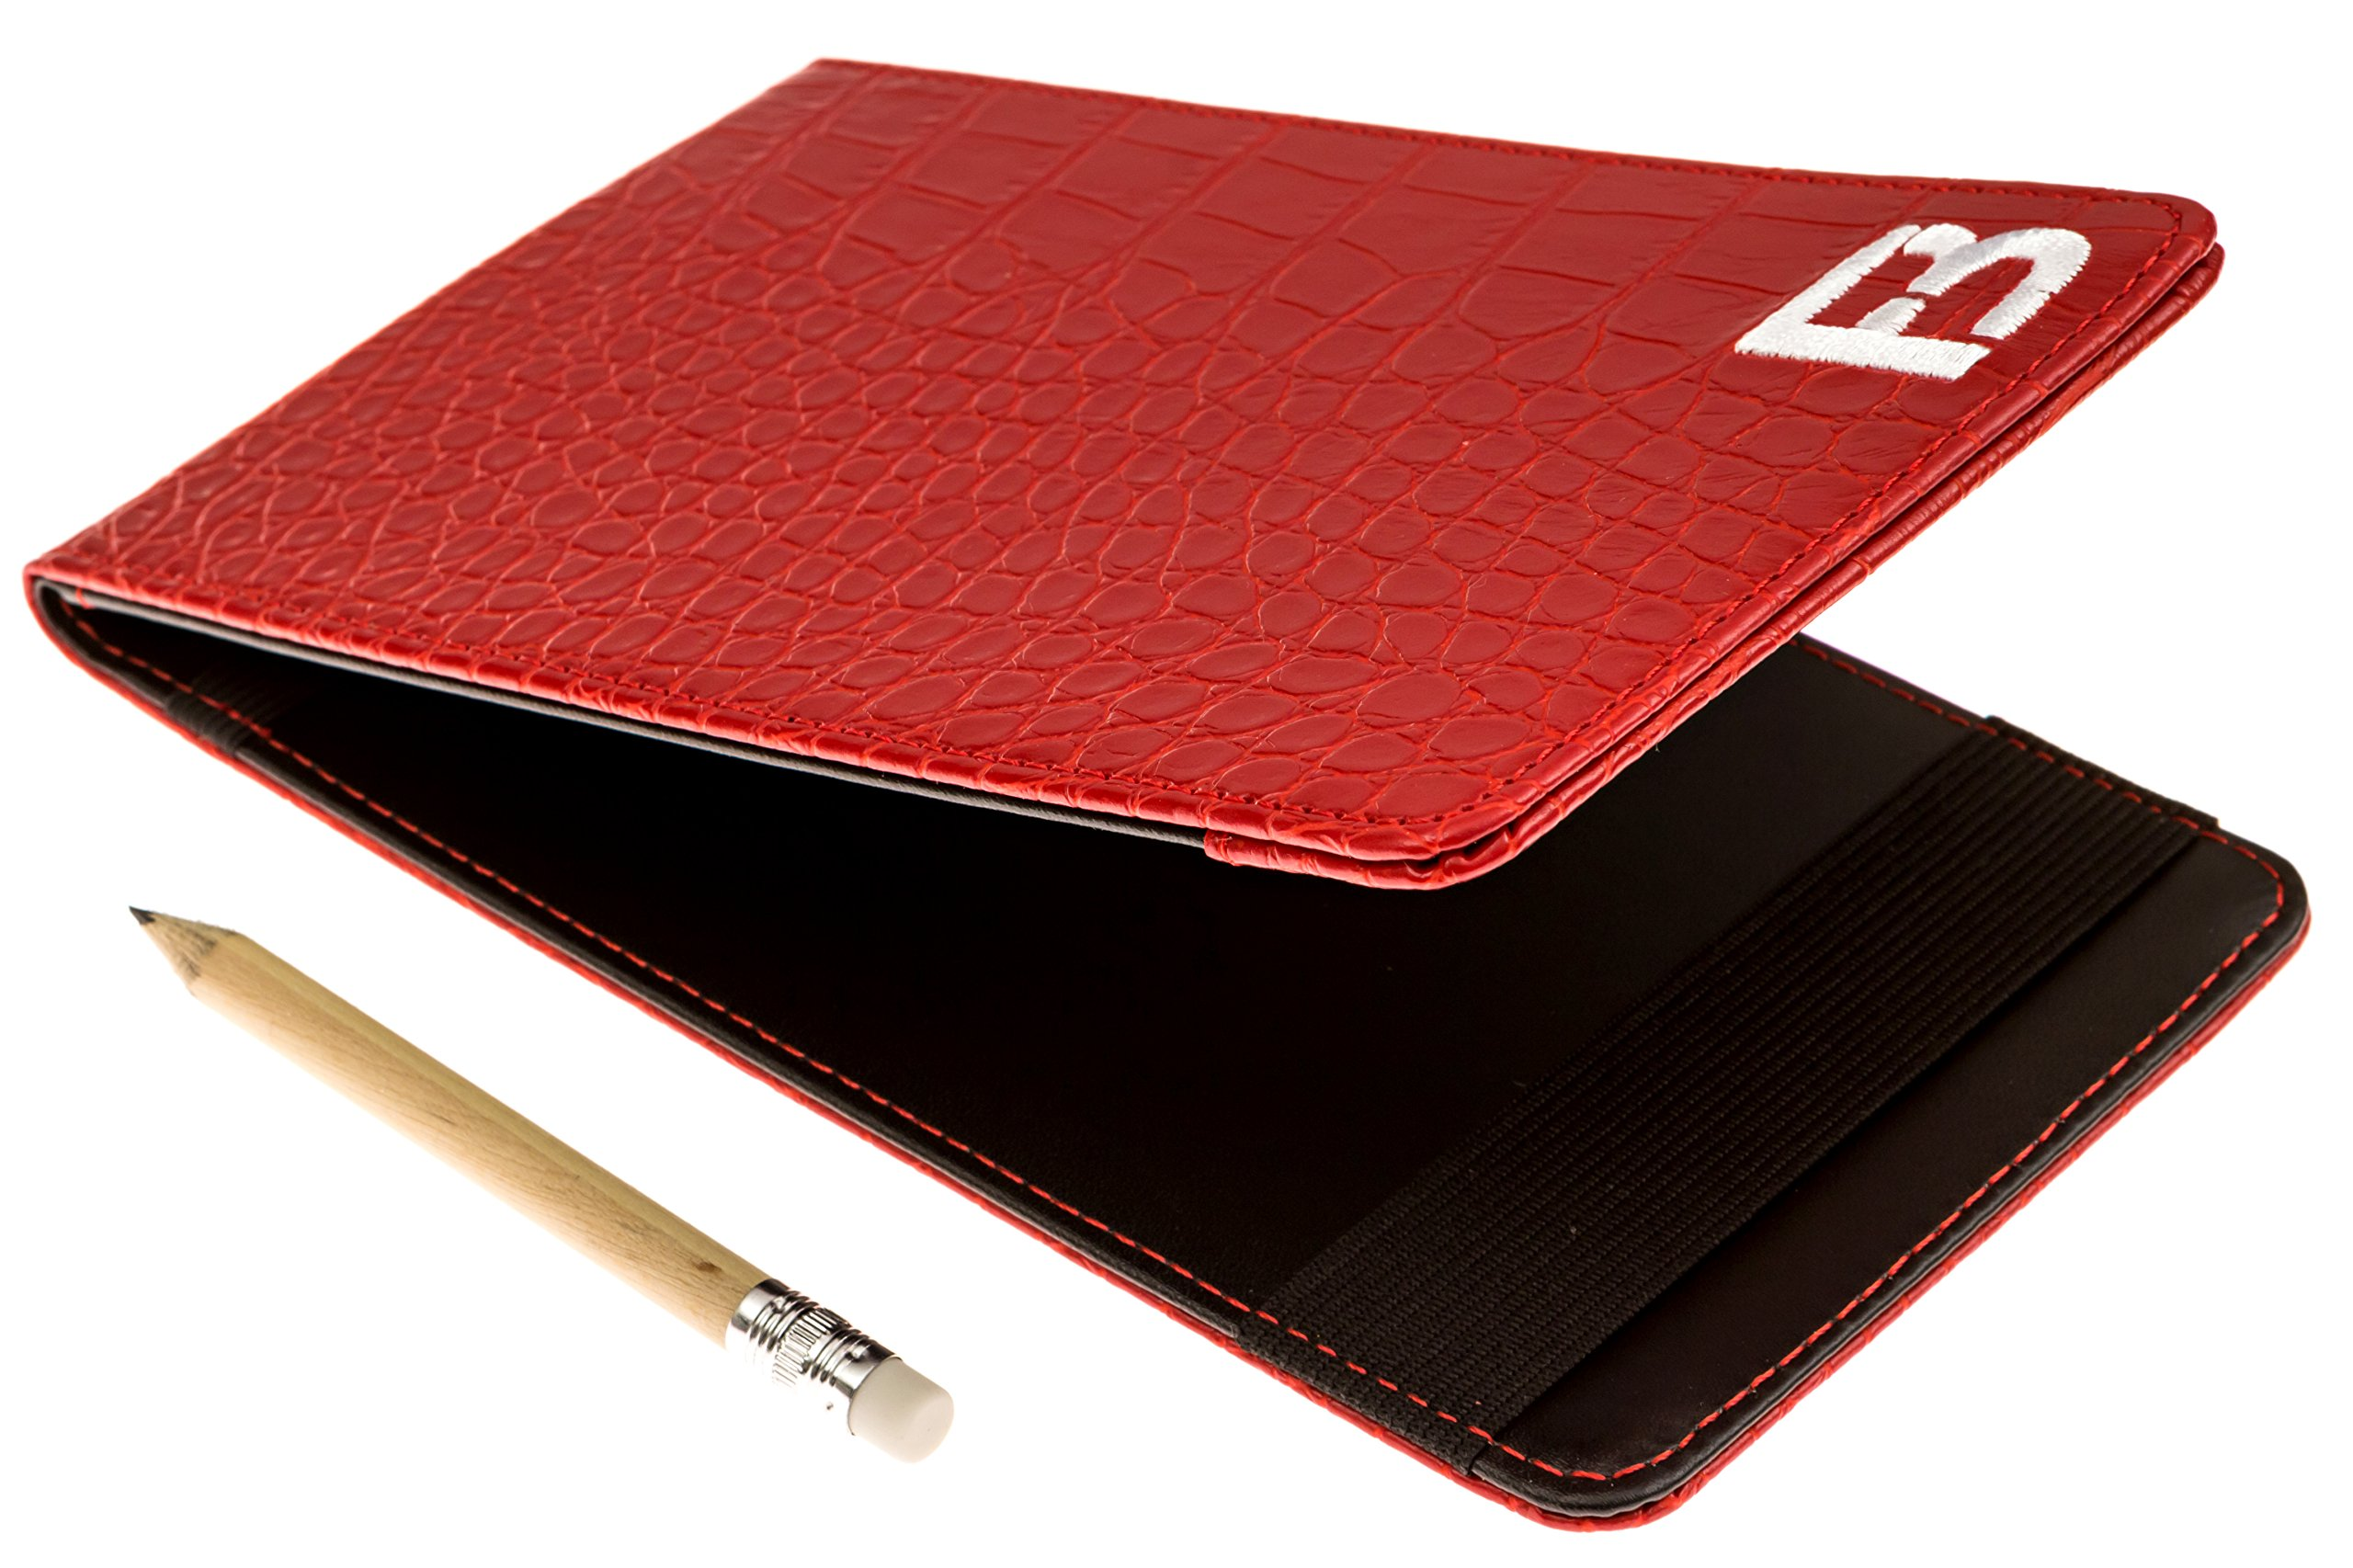 Fuzzy Bunkers Golf Scorecard Holder and Yardage Book Cover PLUS Free Golf Pencil and Downloadable PDF Stat Tracker Sheet by (Red) by VEBE (Image #1)